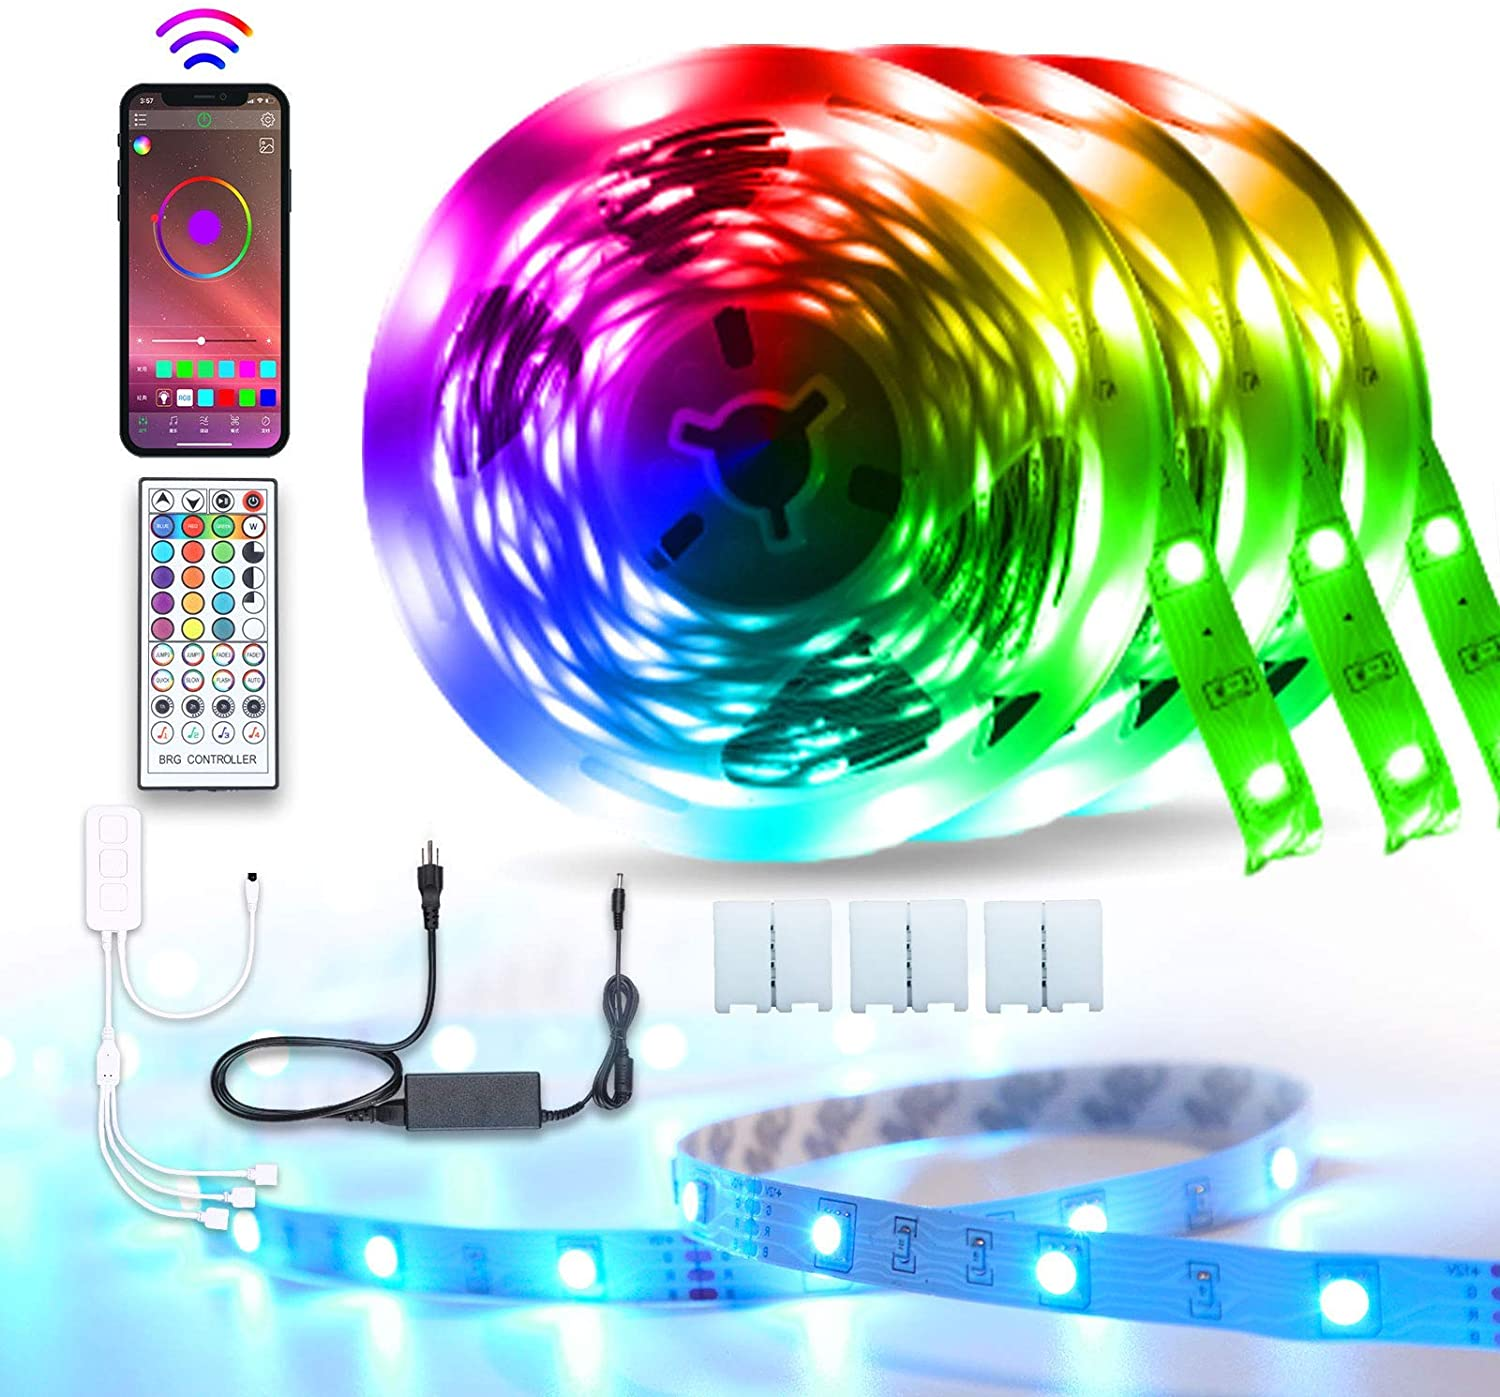 50FT/15m LED Strip Lights, Sumkyle RGB LED Light Strip Bluetooth Music Sync with IR Remote Controller, 5050 SMD Color Changing LED Strip Light for Bedroom, Party, Home, TV